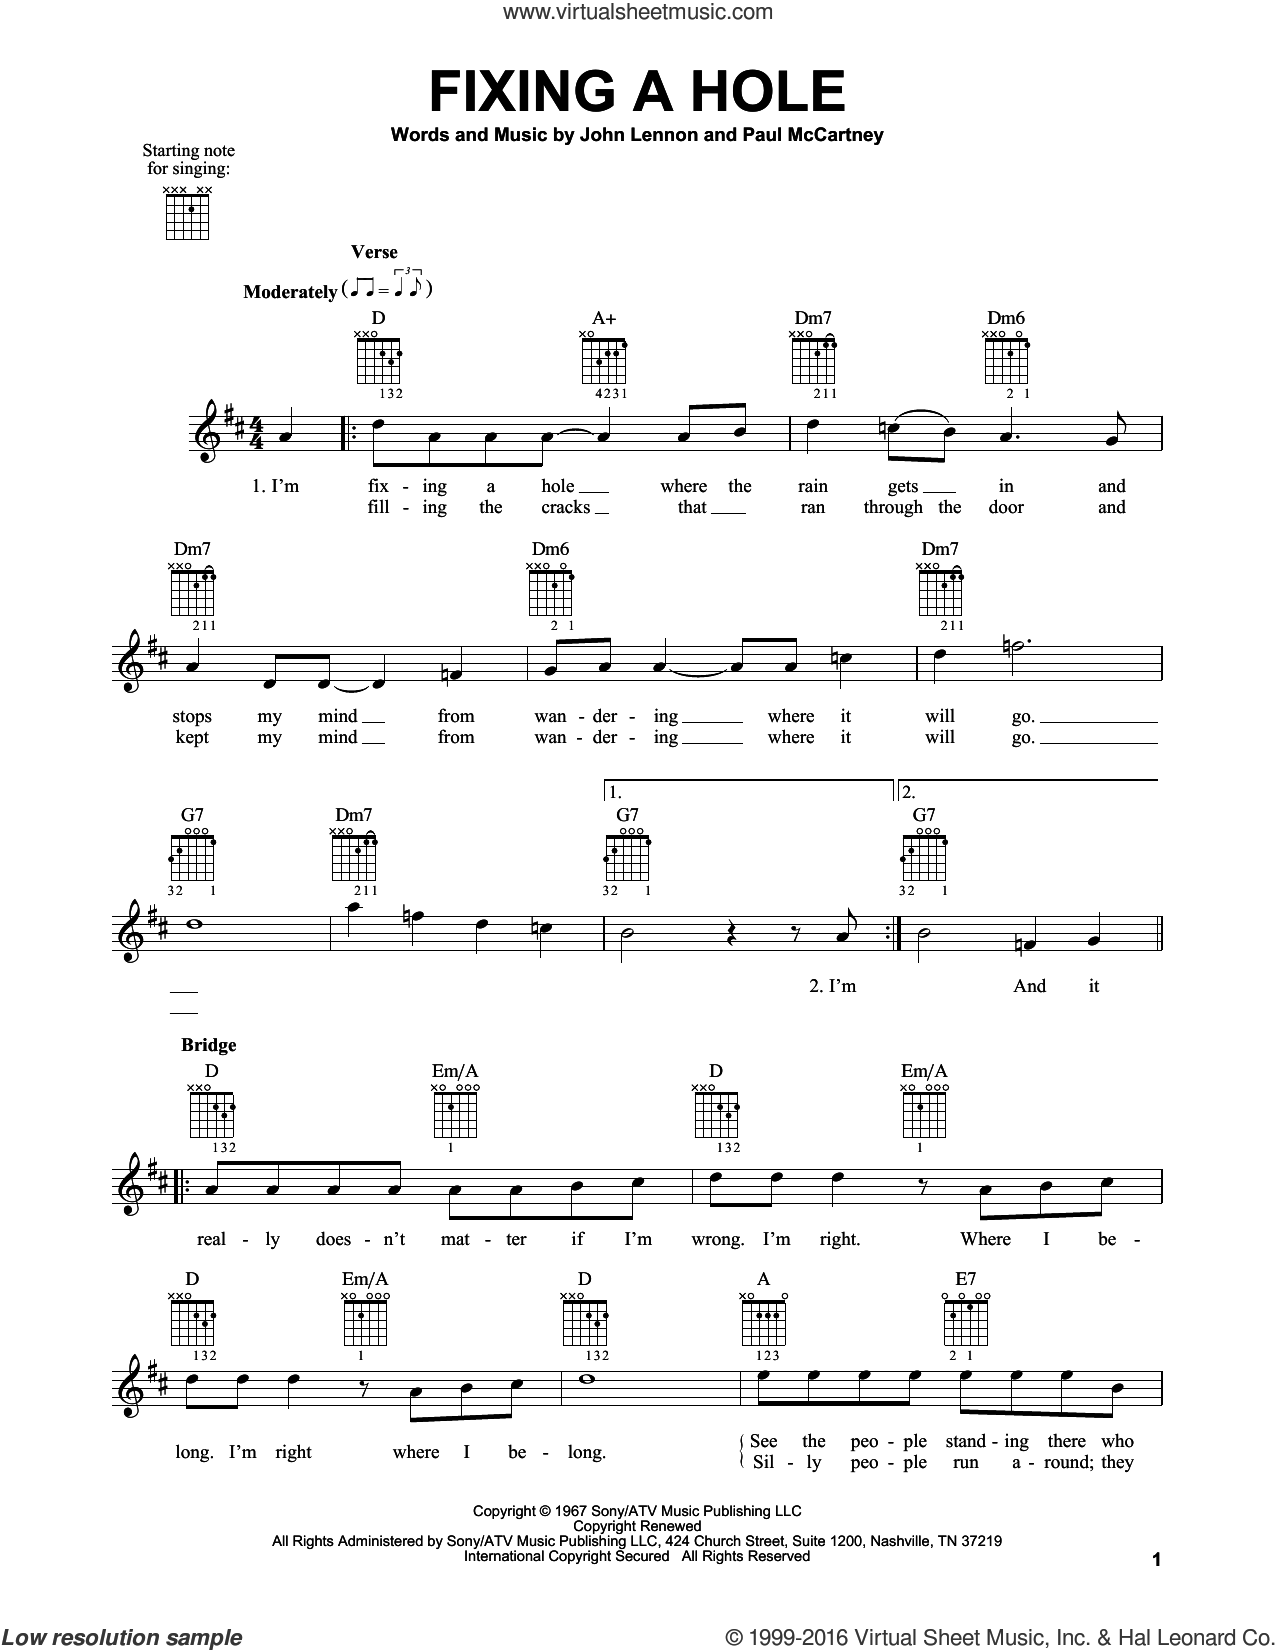 Fixing A Hole sheet music for guitar solo (chords) by The Beatles, John Lennon and Paul McCartney, easy guitar (chords)